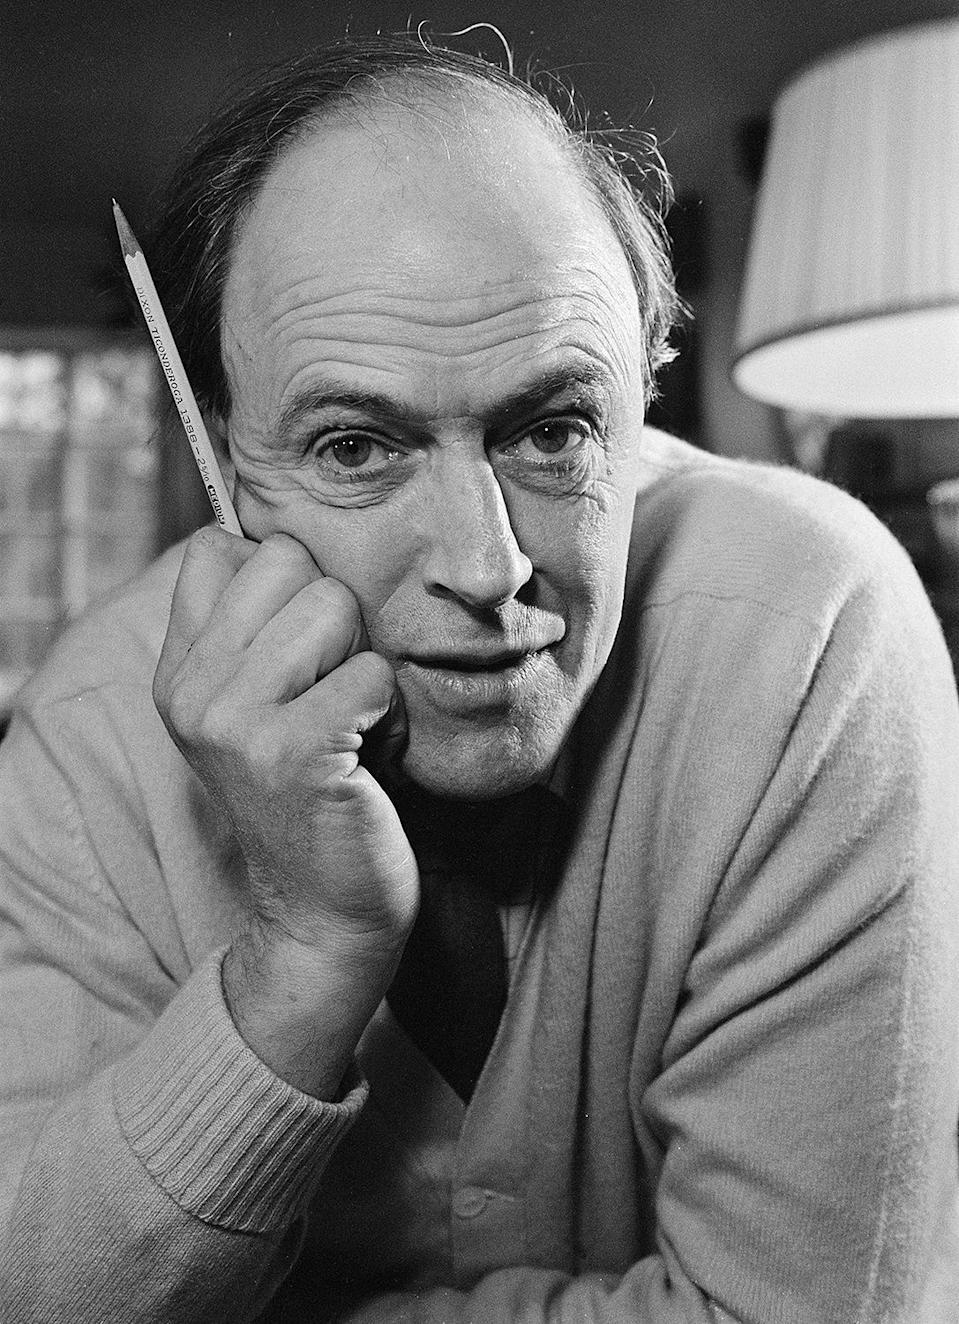 <p>The British novelist — known for popular children's books like <em>Charlie and the Chocolate Factory</em> and <em>Matilda —</em> refused to be decorated as Officer of the Order of the British Empire (OBE)...reportedly because he wanted to be knighted.</p>